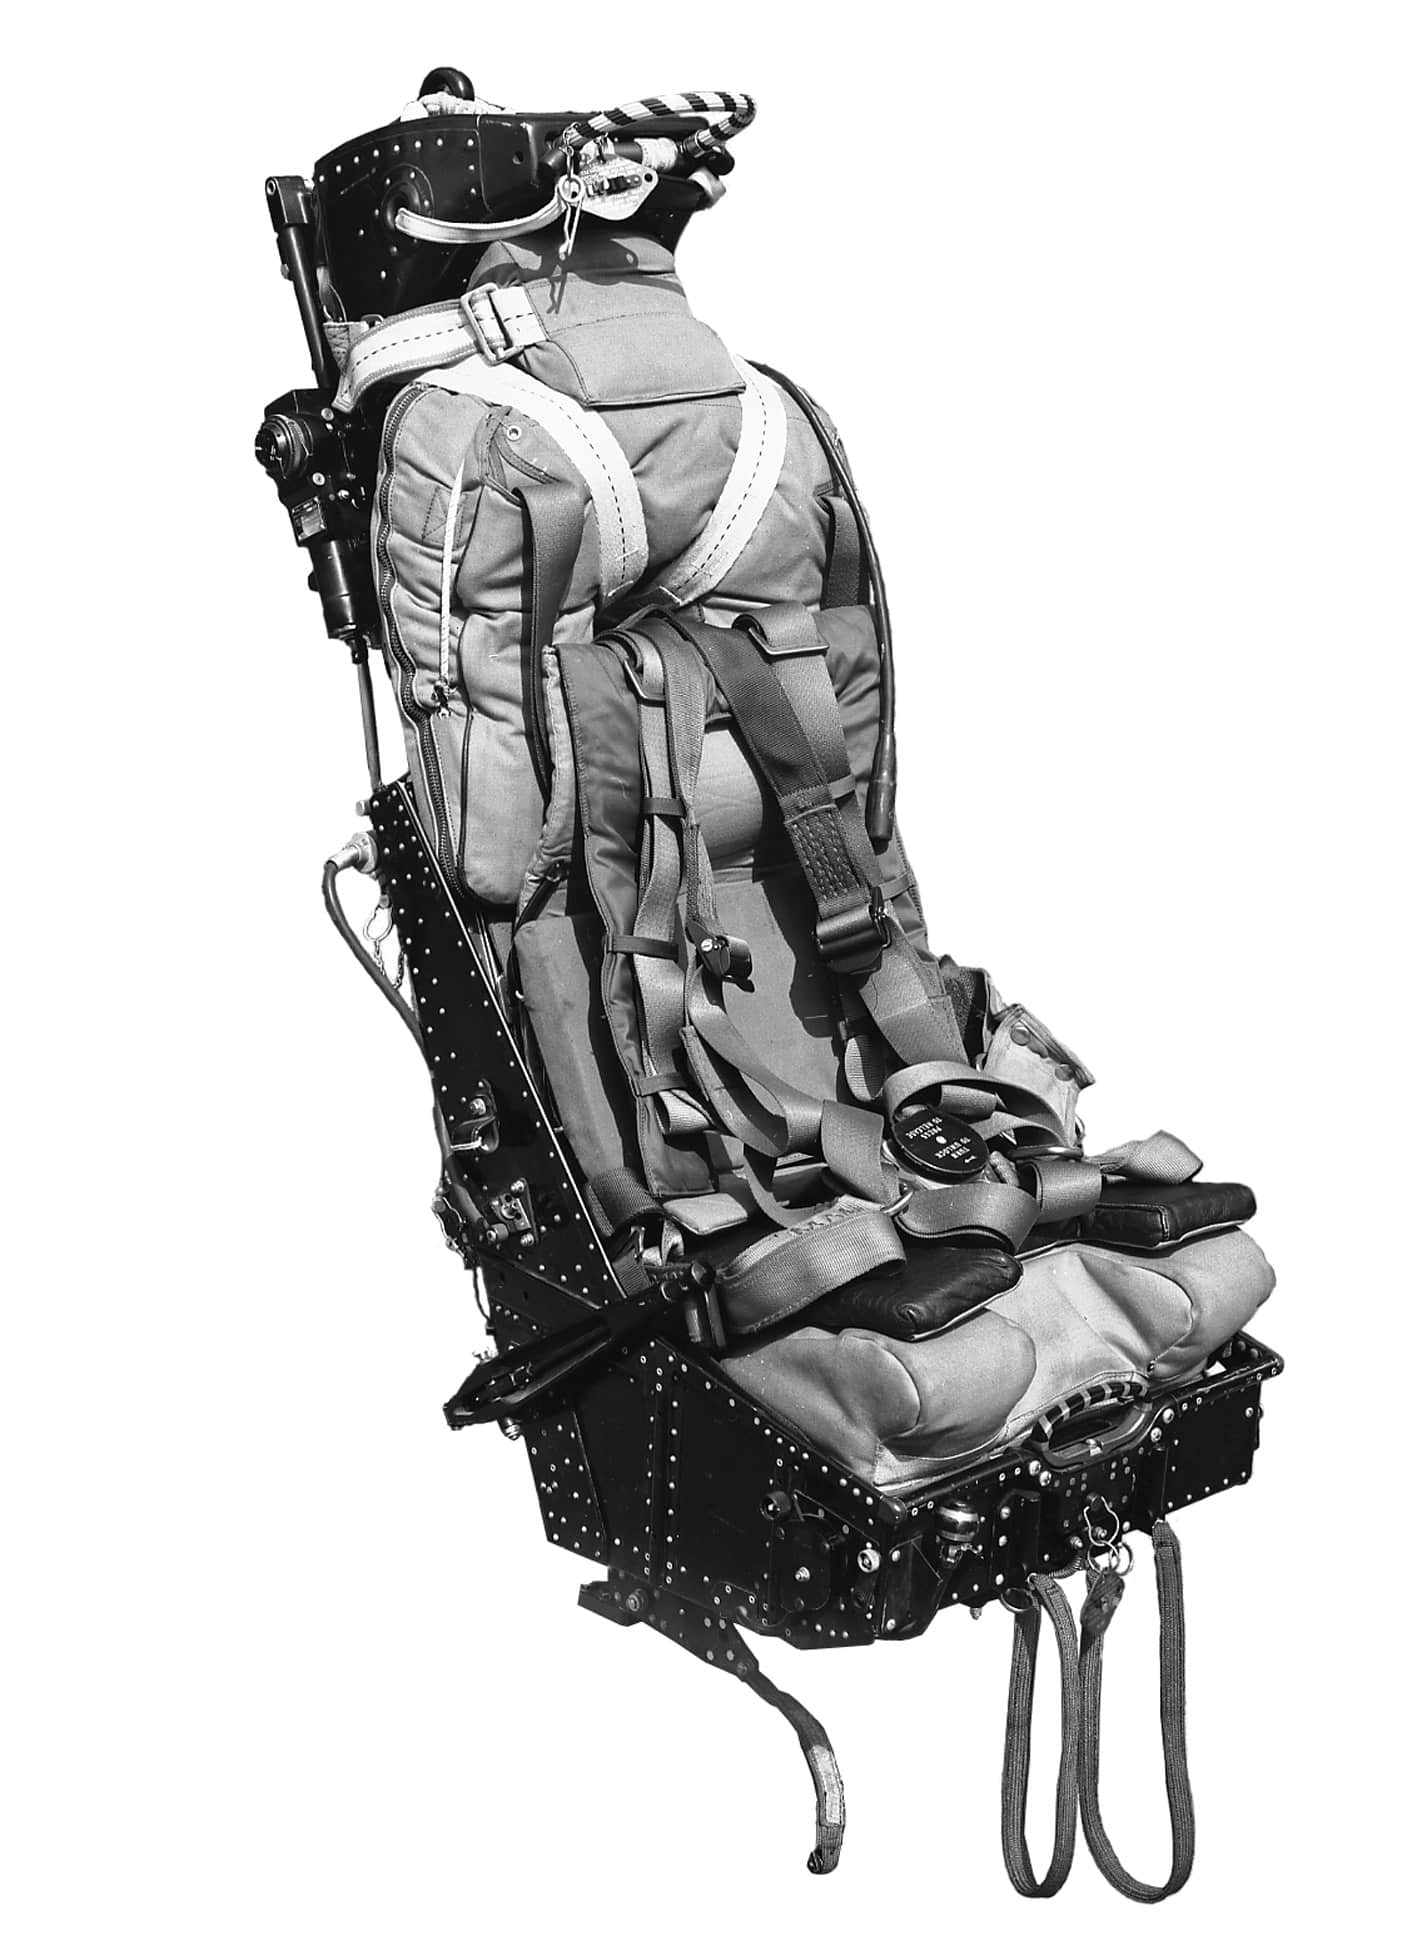 ejection seat handle